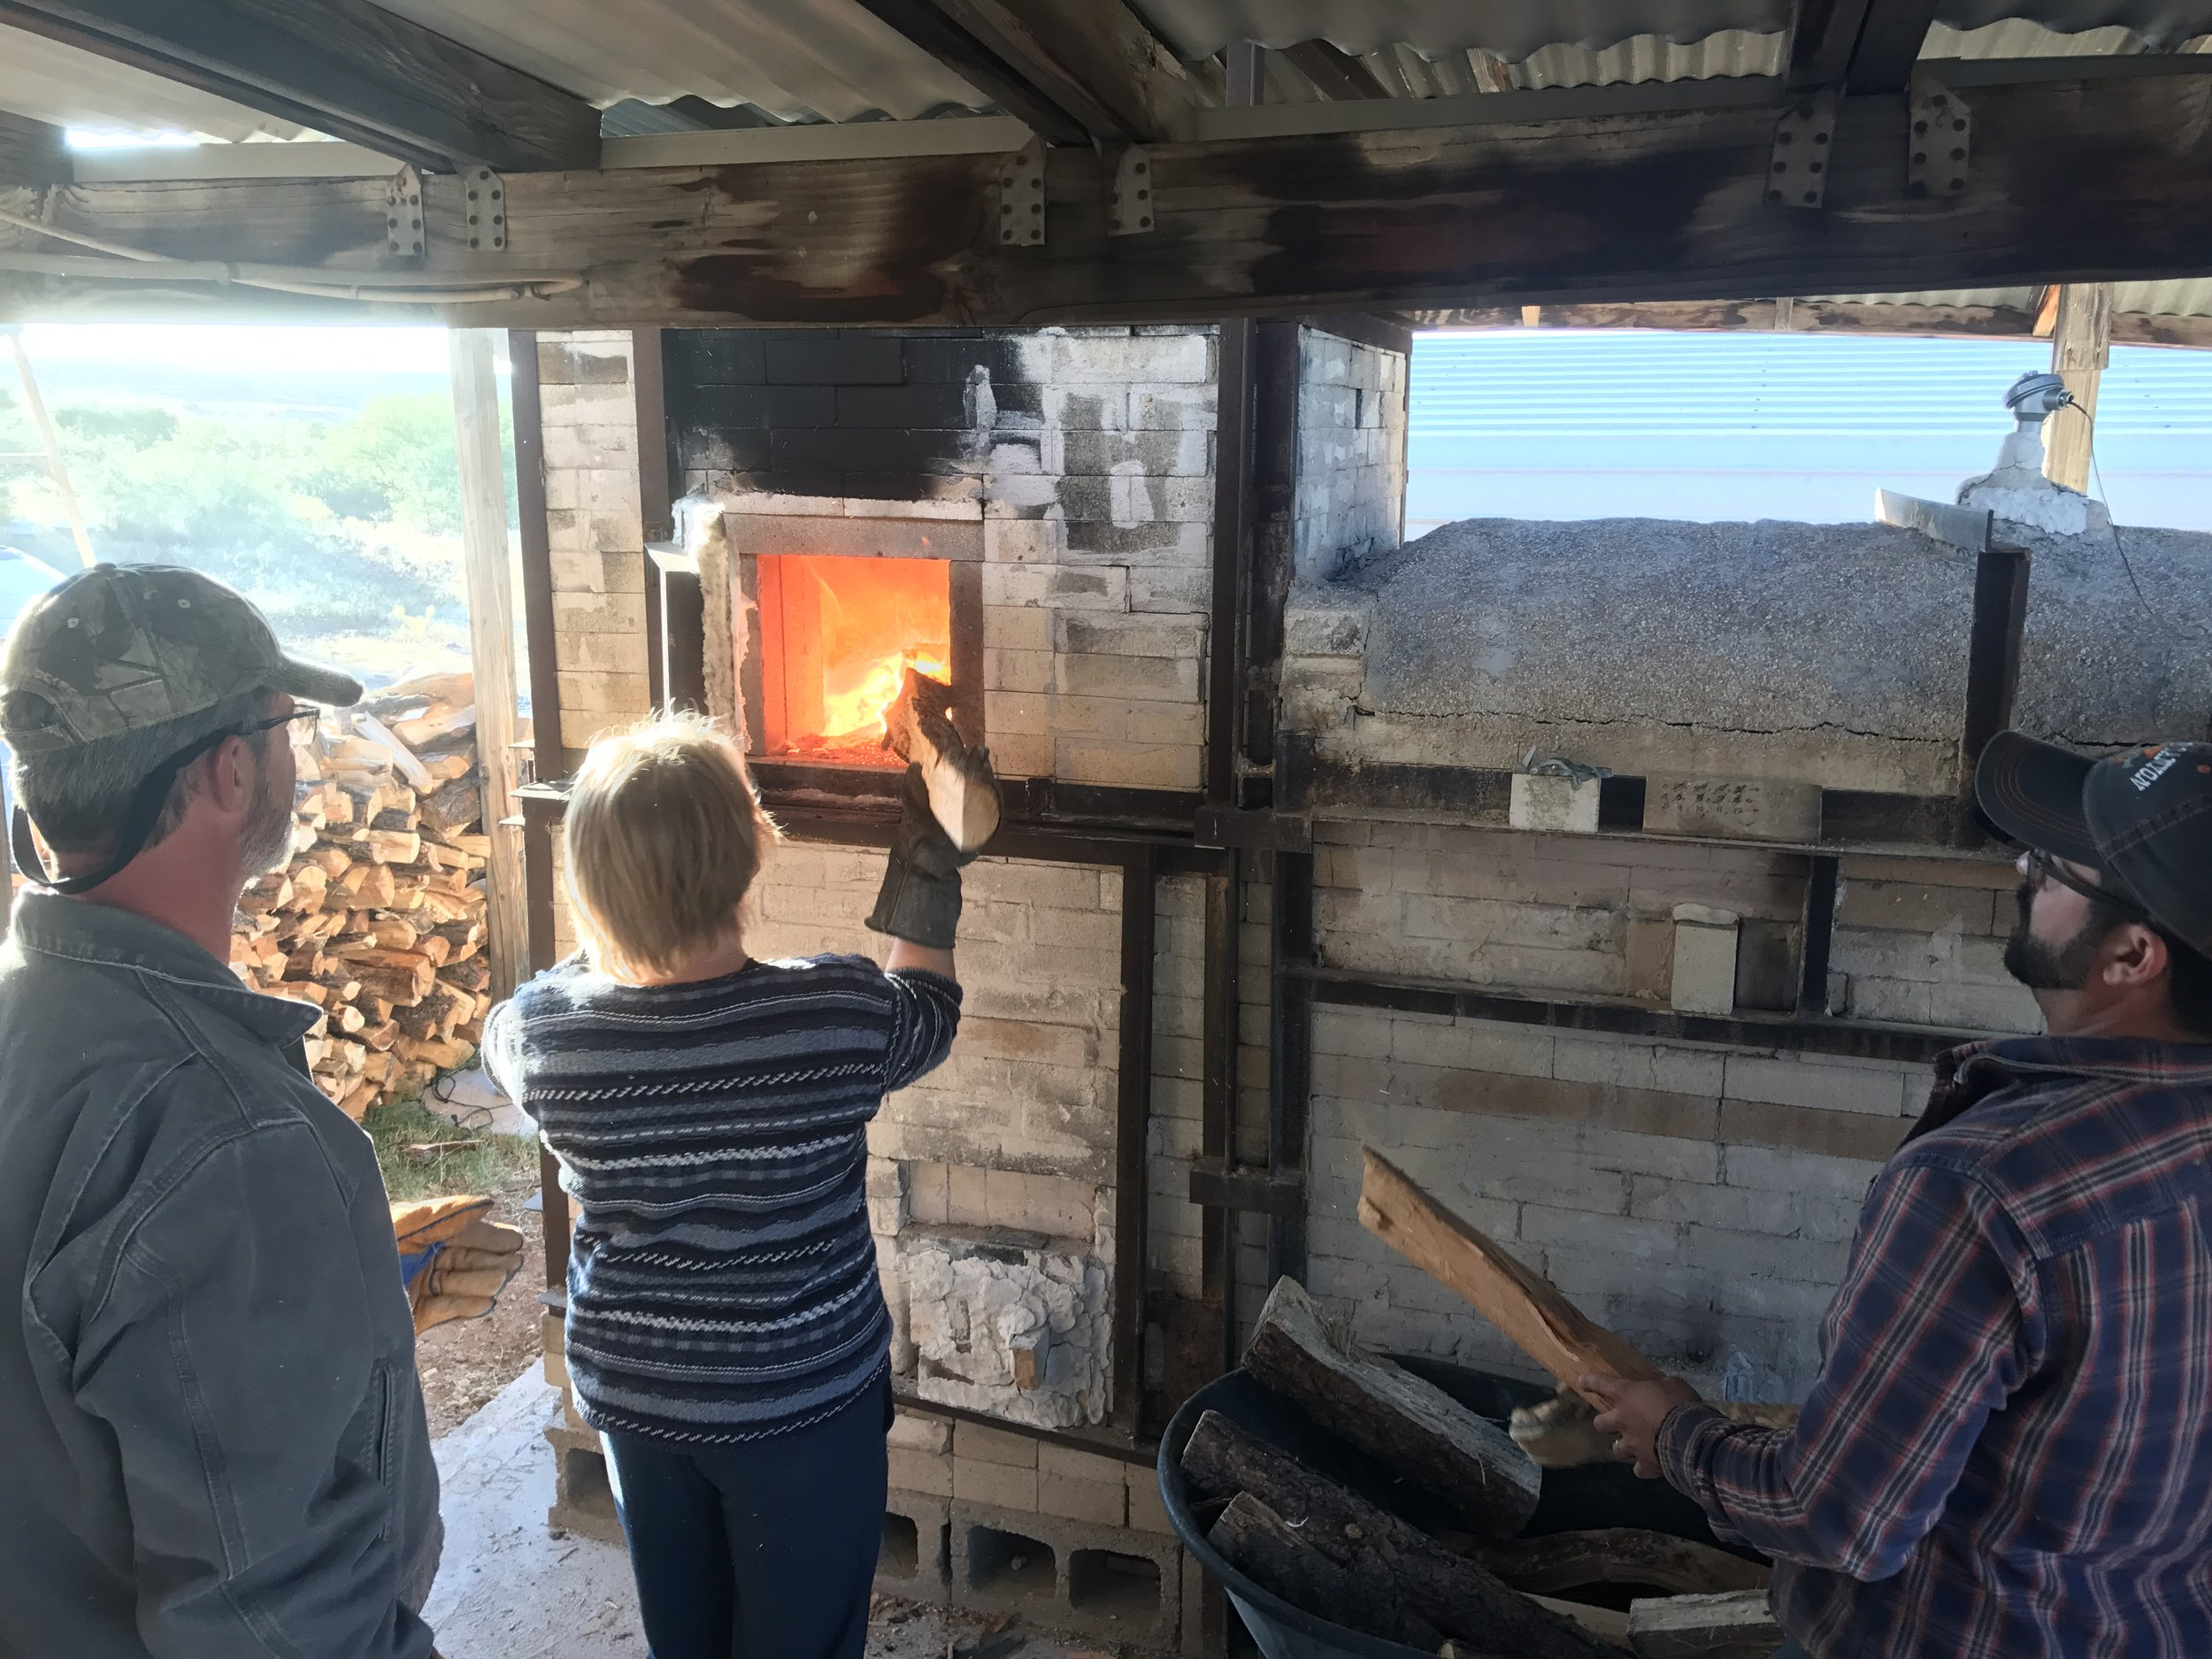 Sheryl stoking the kiln